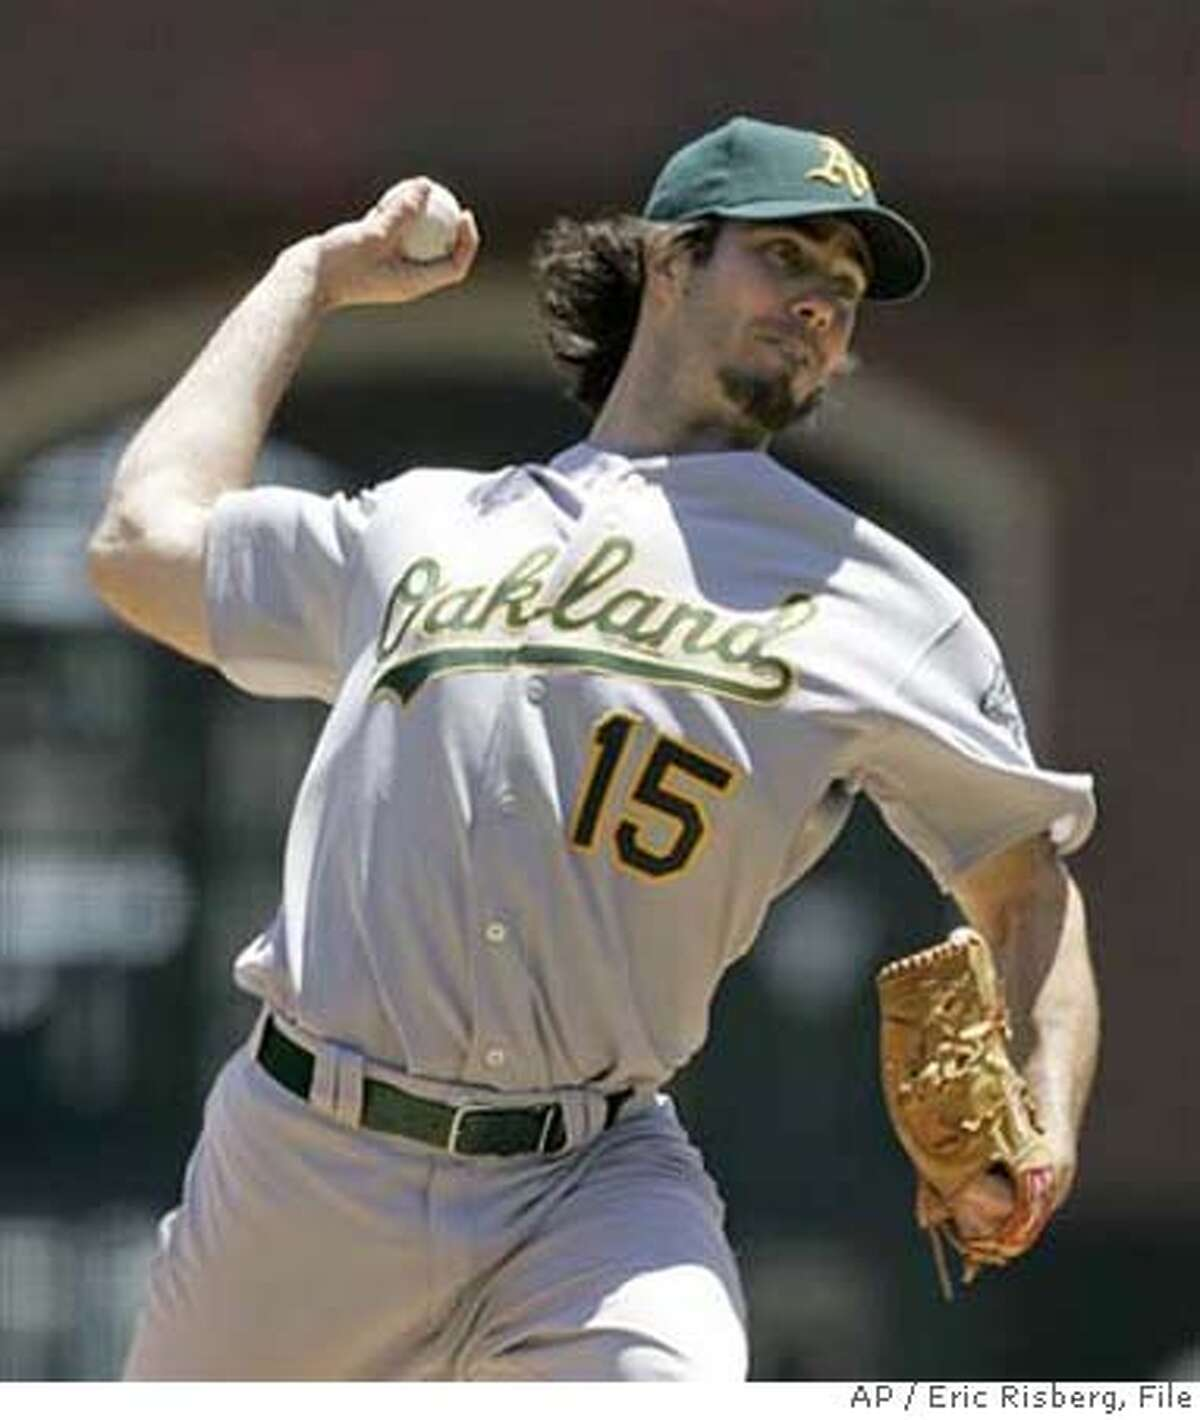 ** FILE ** Oakland Athletics' Dan Haren throws a pitch during a game against the San Francisco Giants in this file photo from June 9, 2007, in San Francisco. Haren and Connor Robertson, both right-handed pitchers, were traded from the Oakland Athletics to the Arizona Diamondbacks for left-handed pitchers Brett Anderson, Dana Eveland and Greg Smith; infielder Chris Carter and outfielders Aaron Cunningham and Carlos Gonzalez. (AP Photo/Eric Risberg, File)